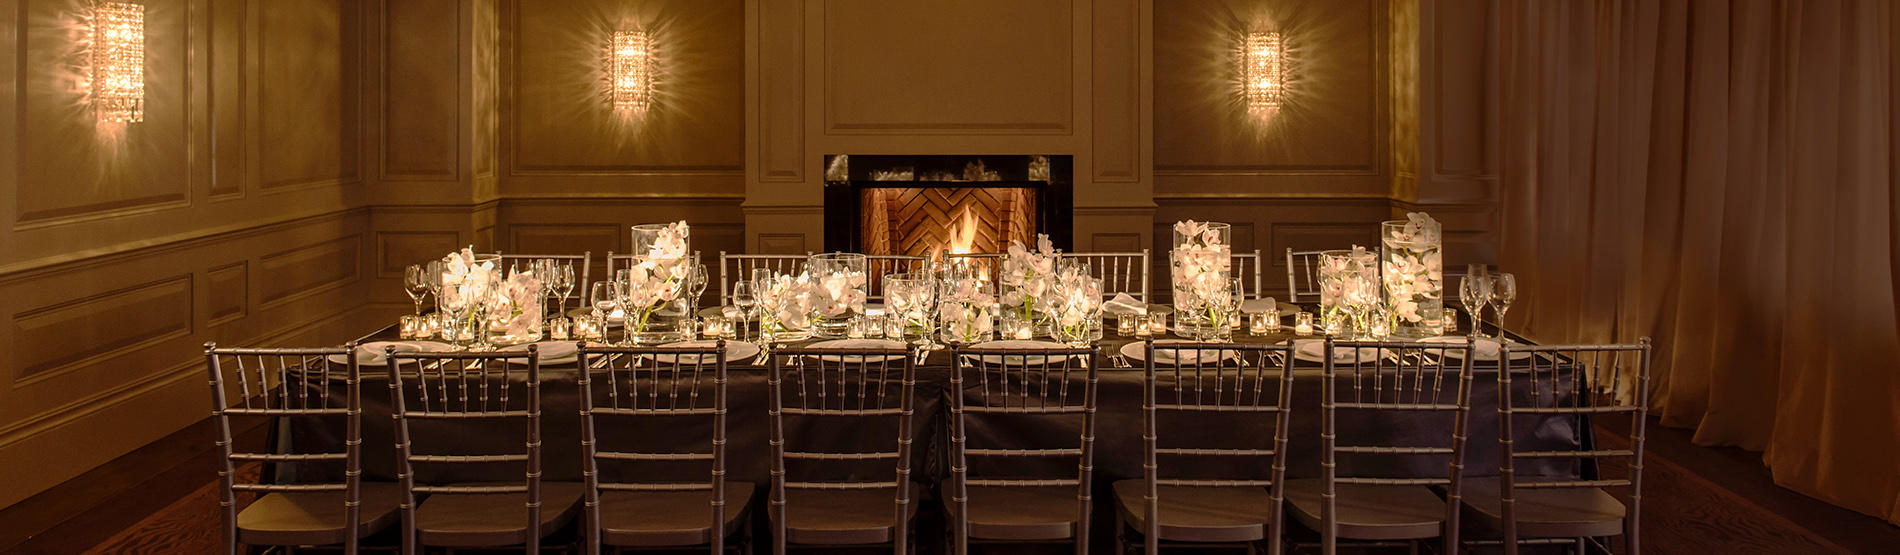 Wedding Venue In Dc With Parking The Dupont Circle Hotel